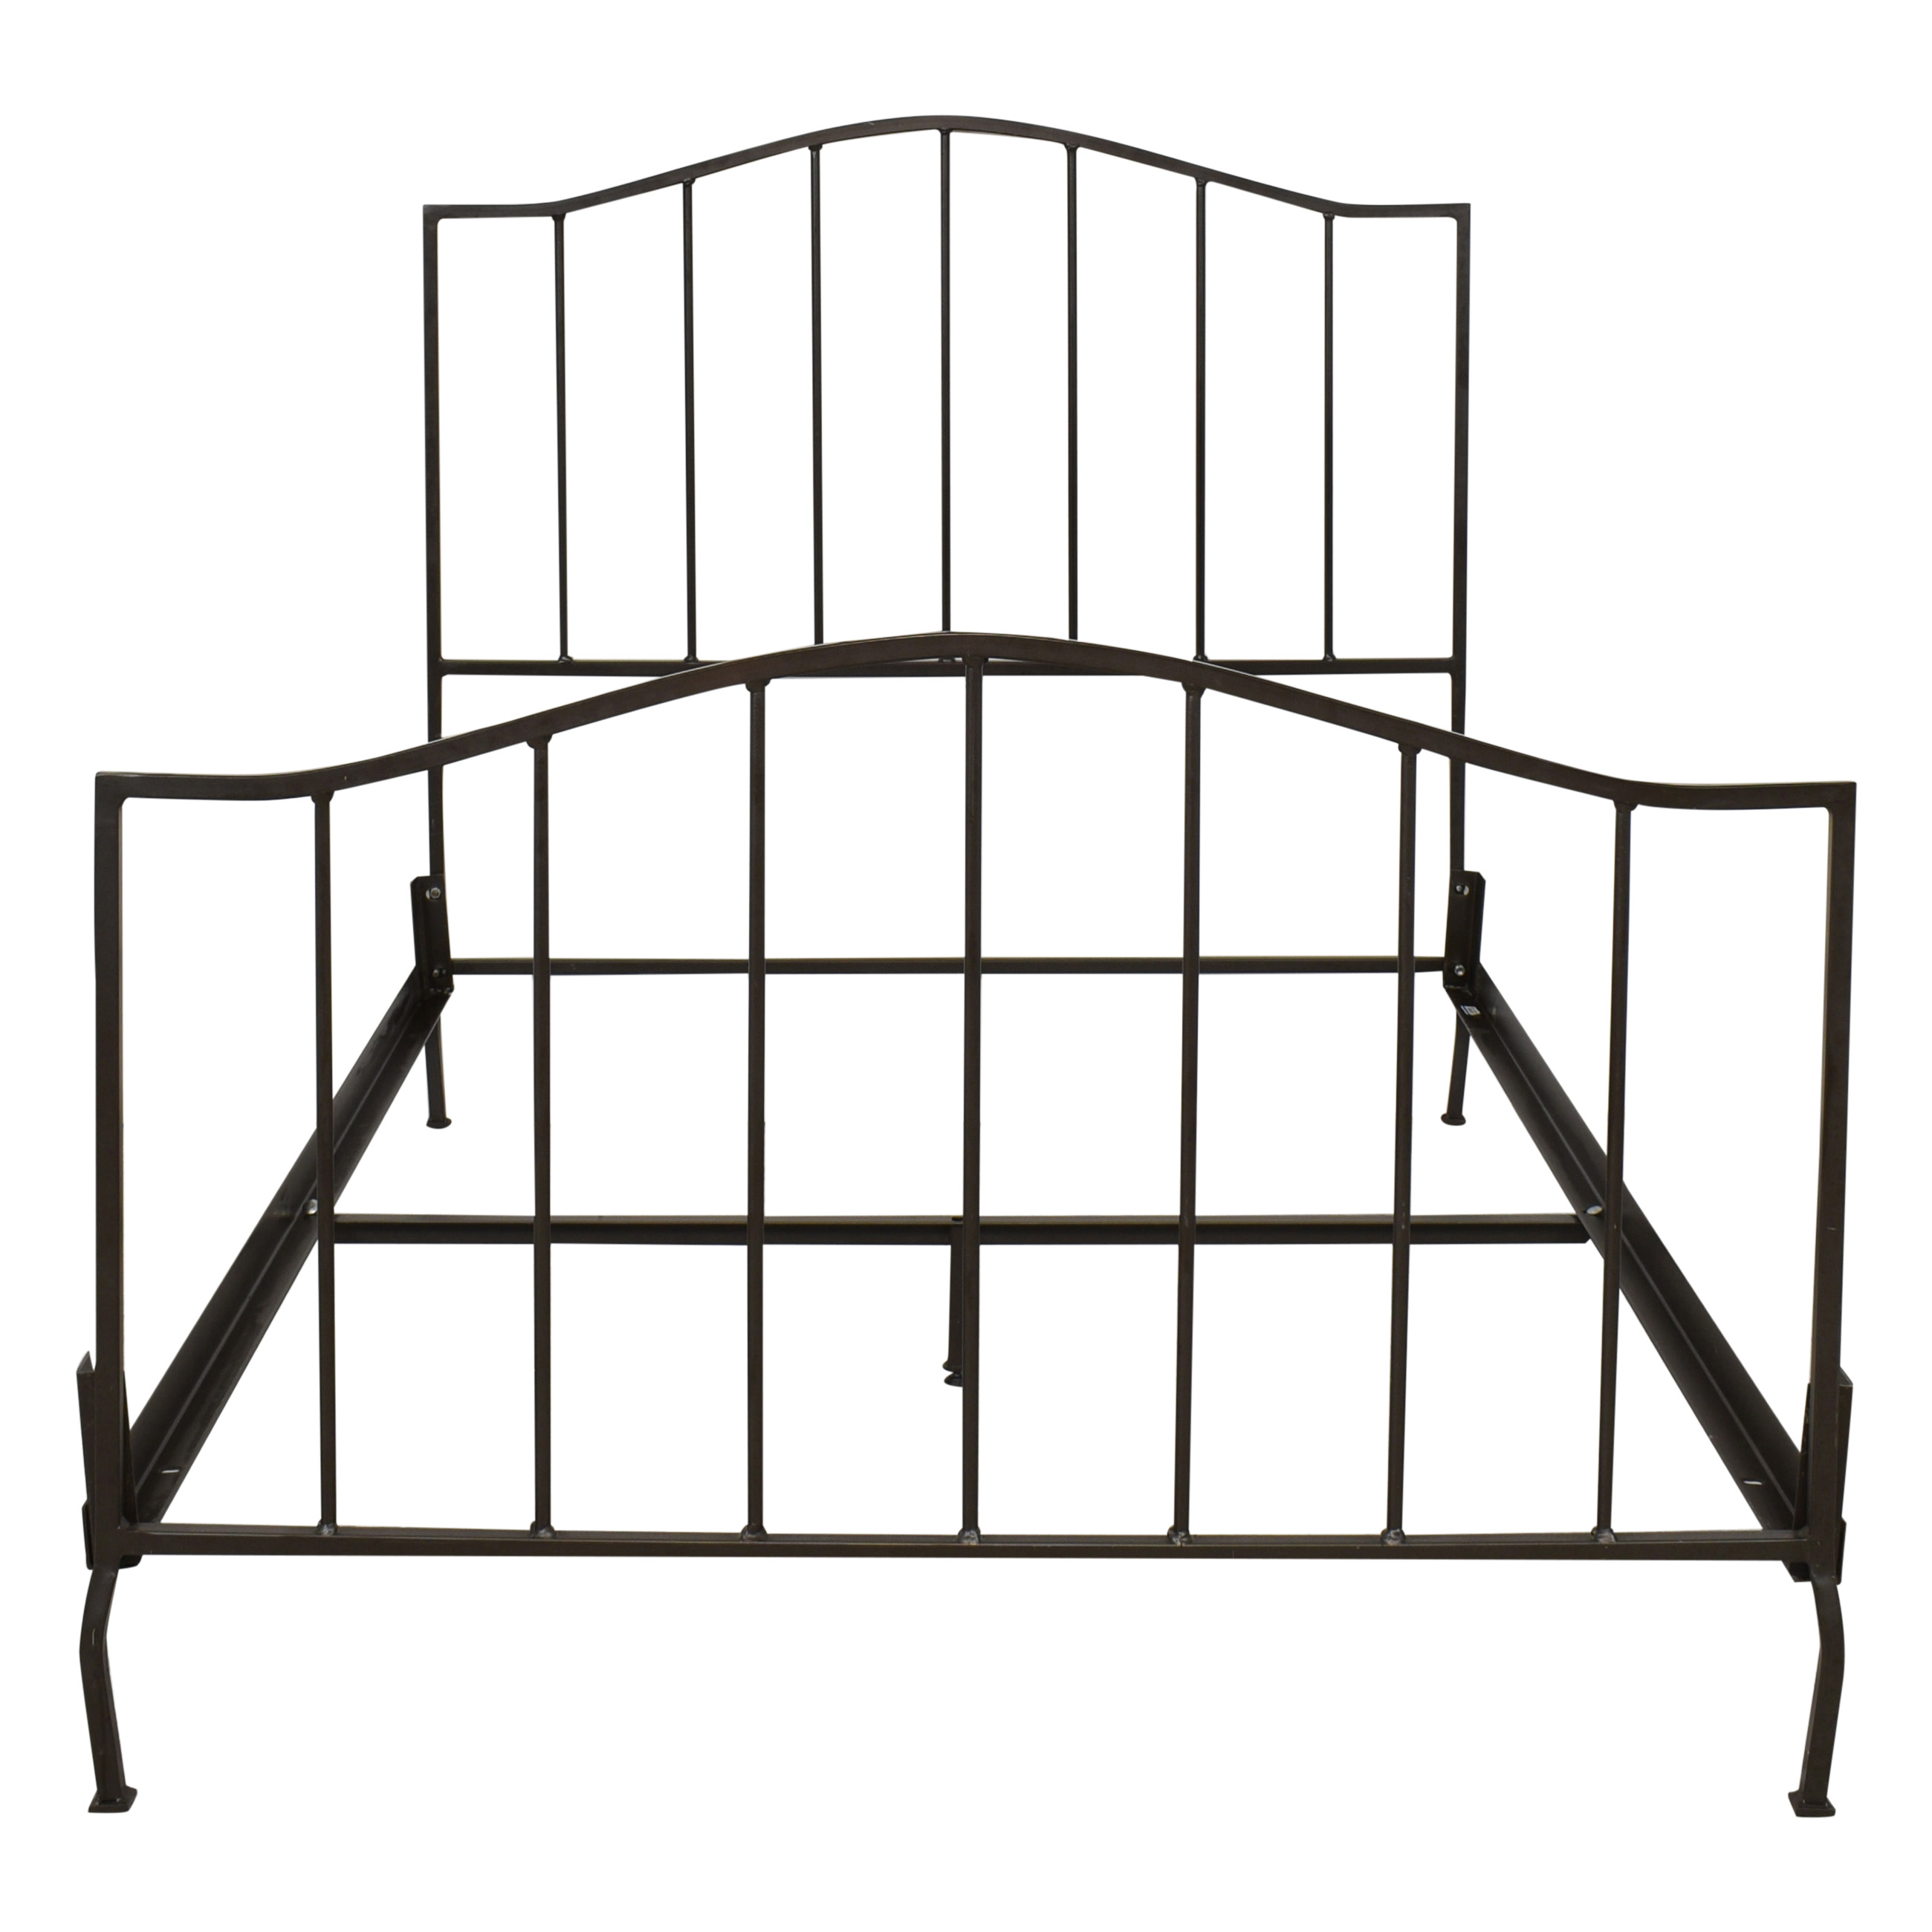 buy Crate &Barrel Full Metal Bed Frame Crate & Barrel Beds